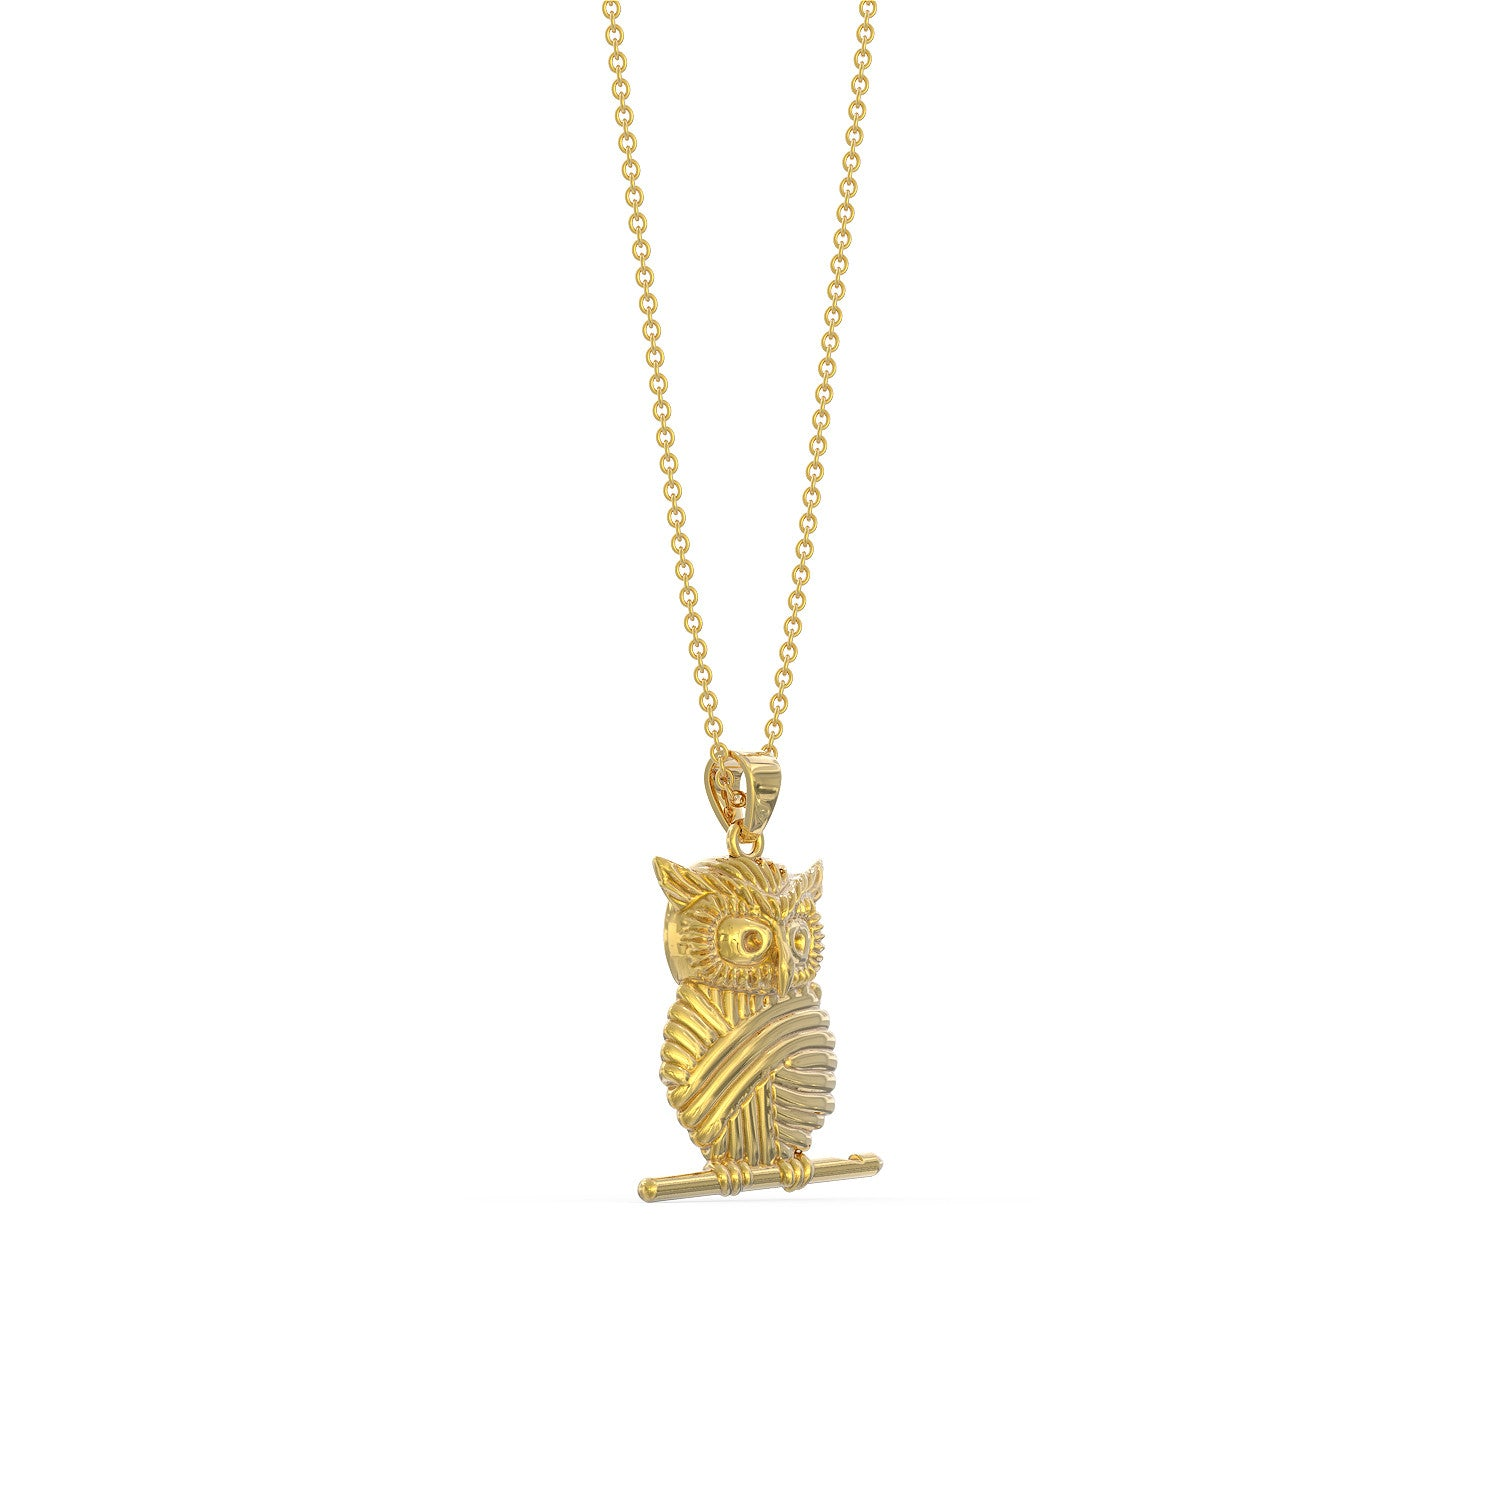 Owl Crochet Design Necklace